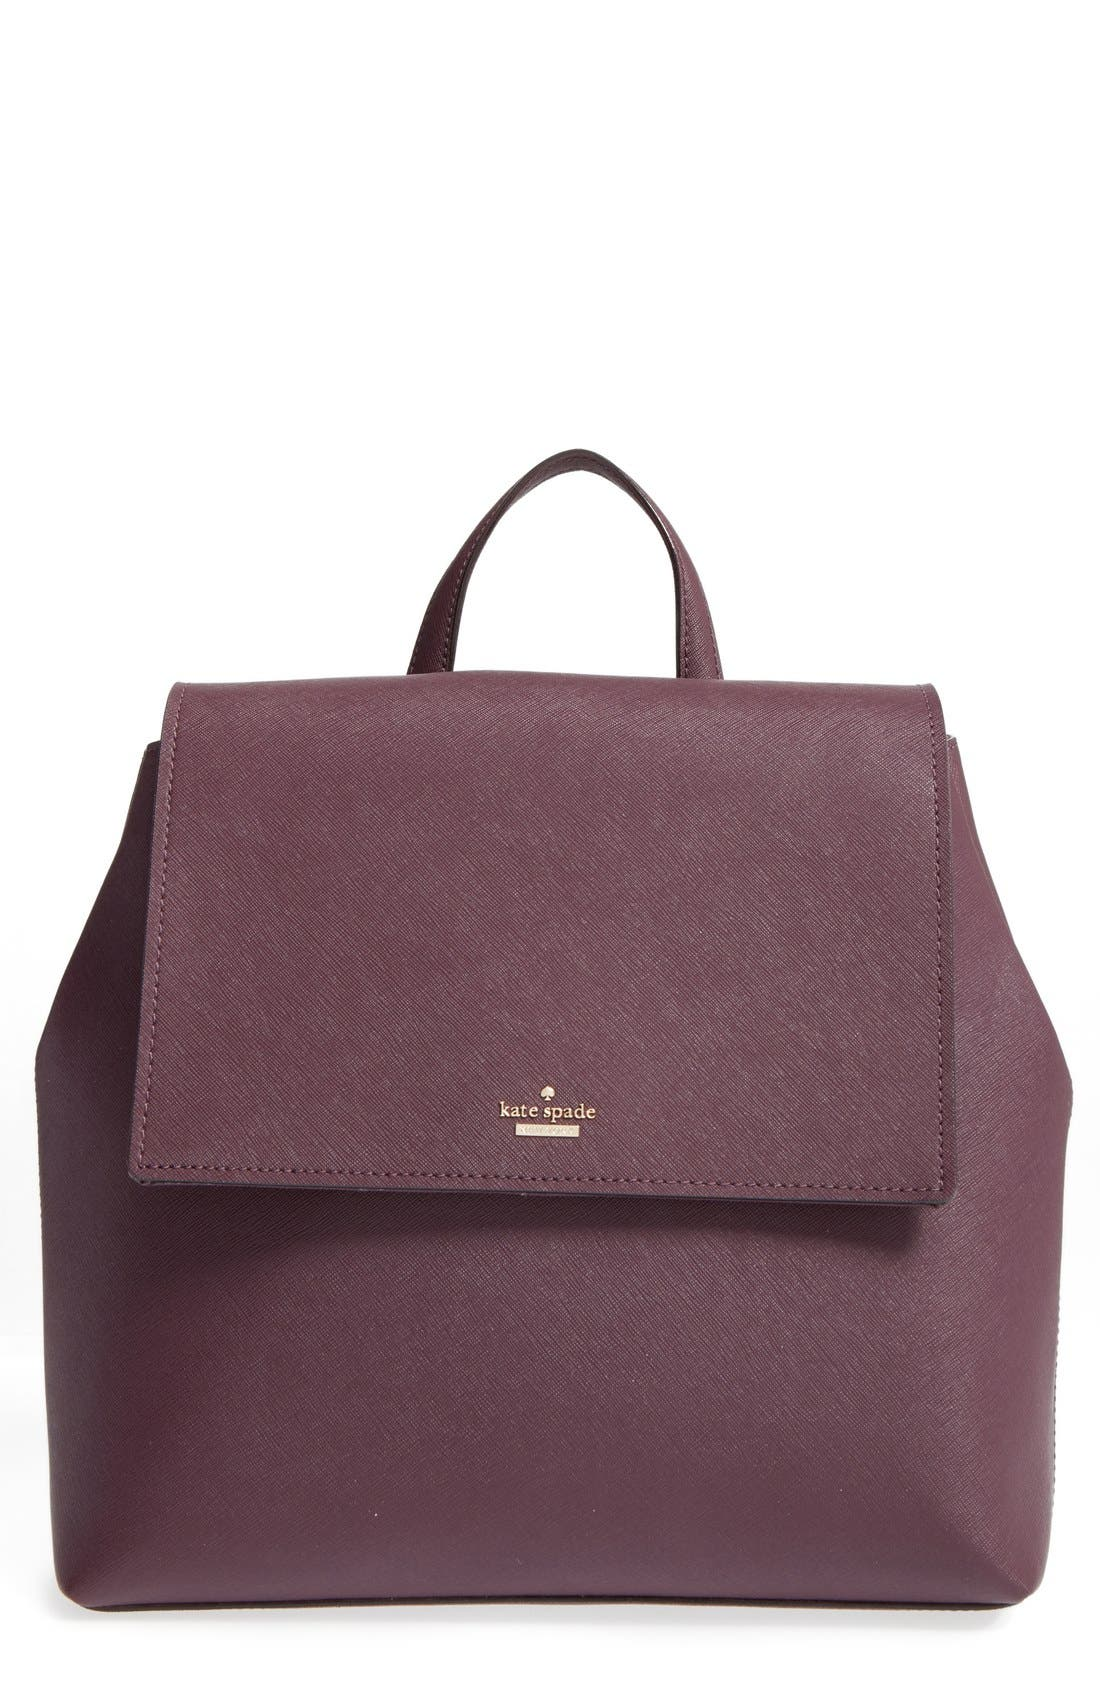 Alternate Image 1 Selected - kate spade new york 'cameron street - neema' leather backpack